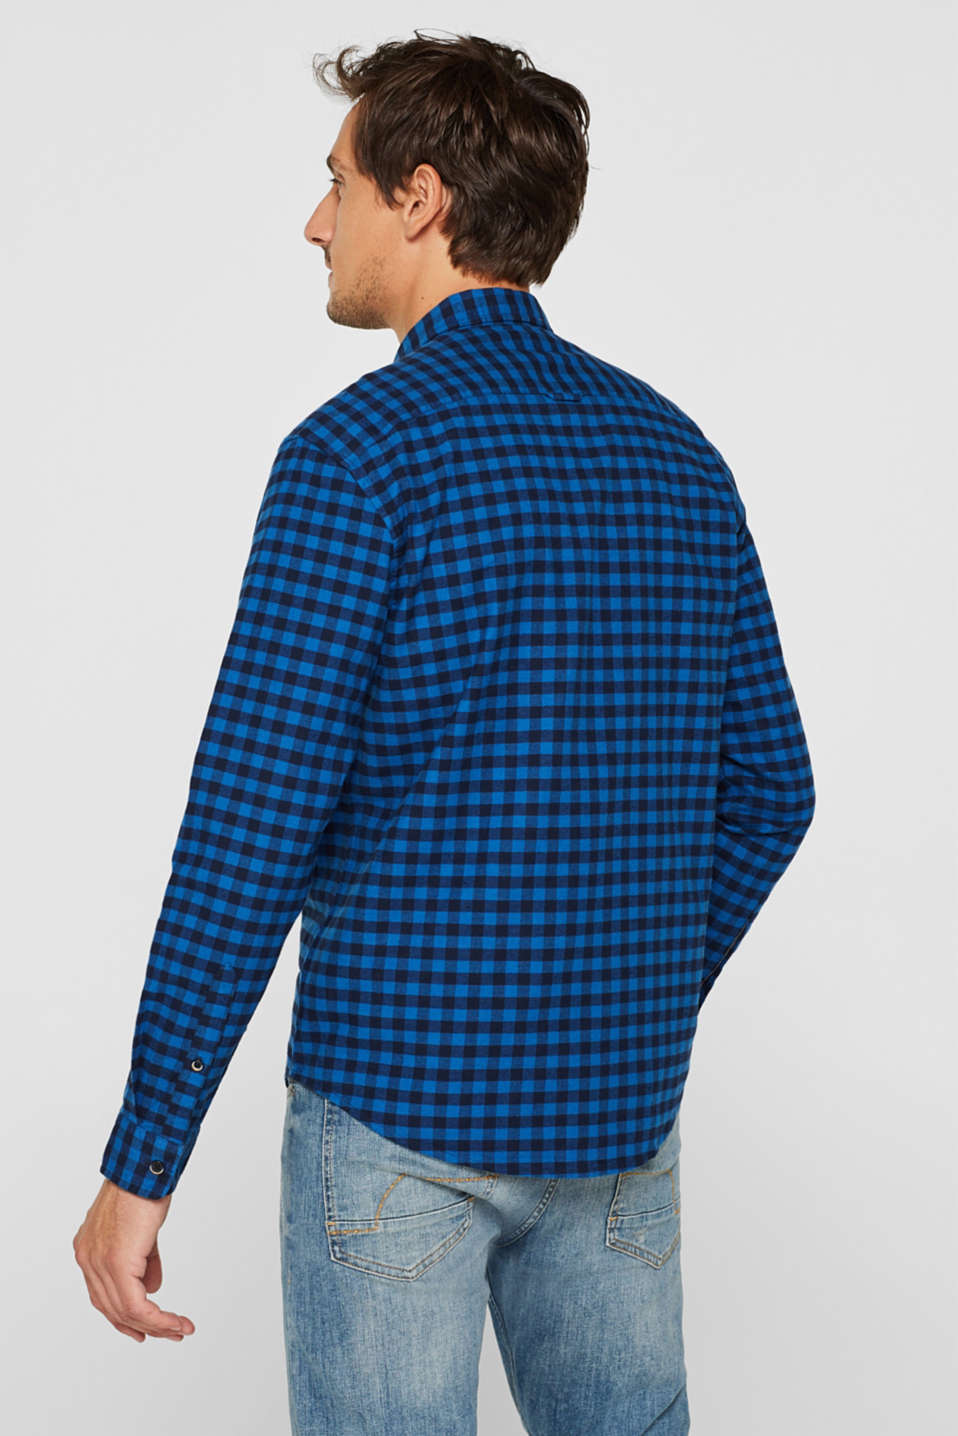 Flannel shirt with checks, made of stretch cotton, NAVY, detail image number 3